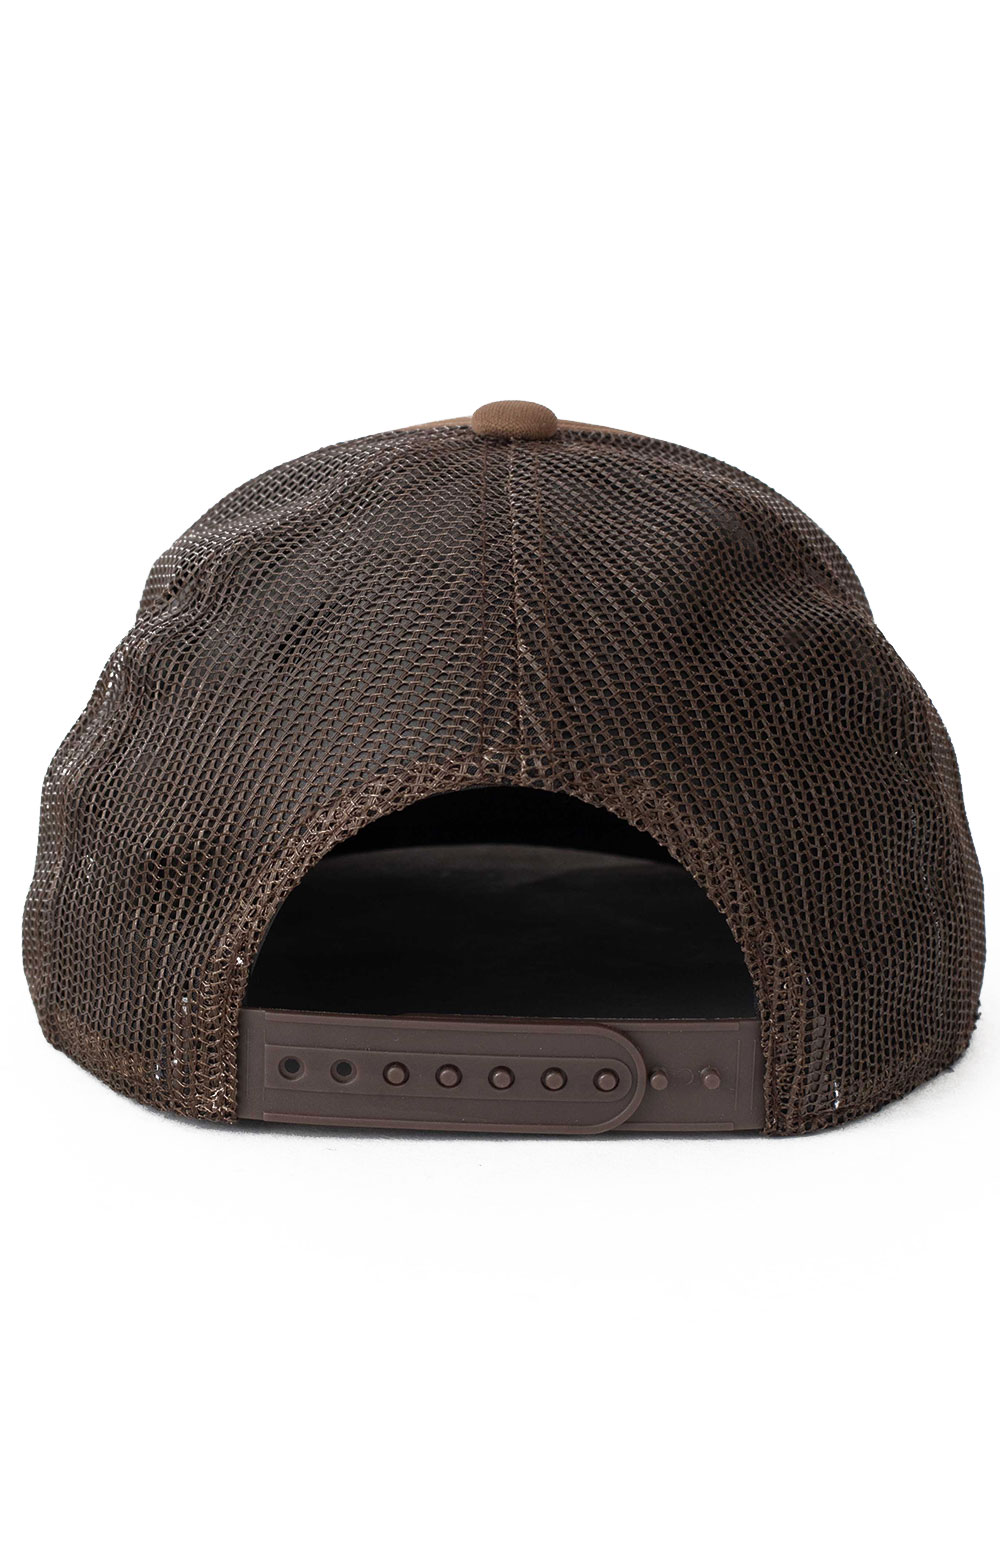 Beta MP Mesh Snap-Back Hat - Toffee 3